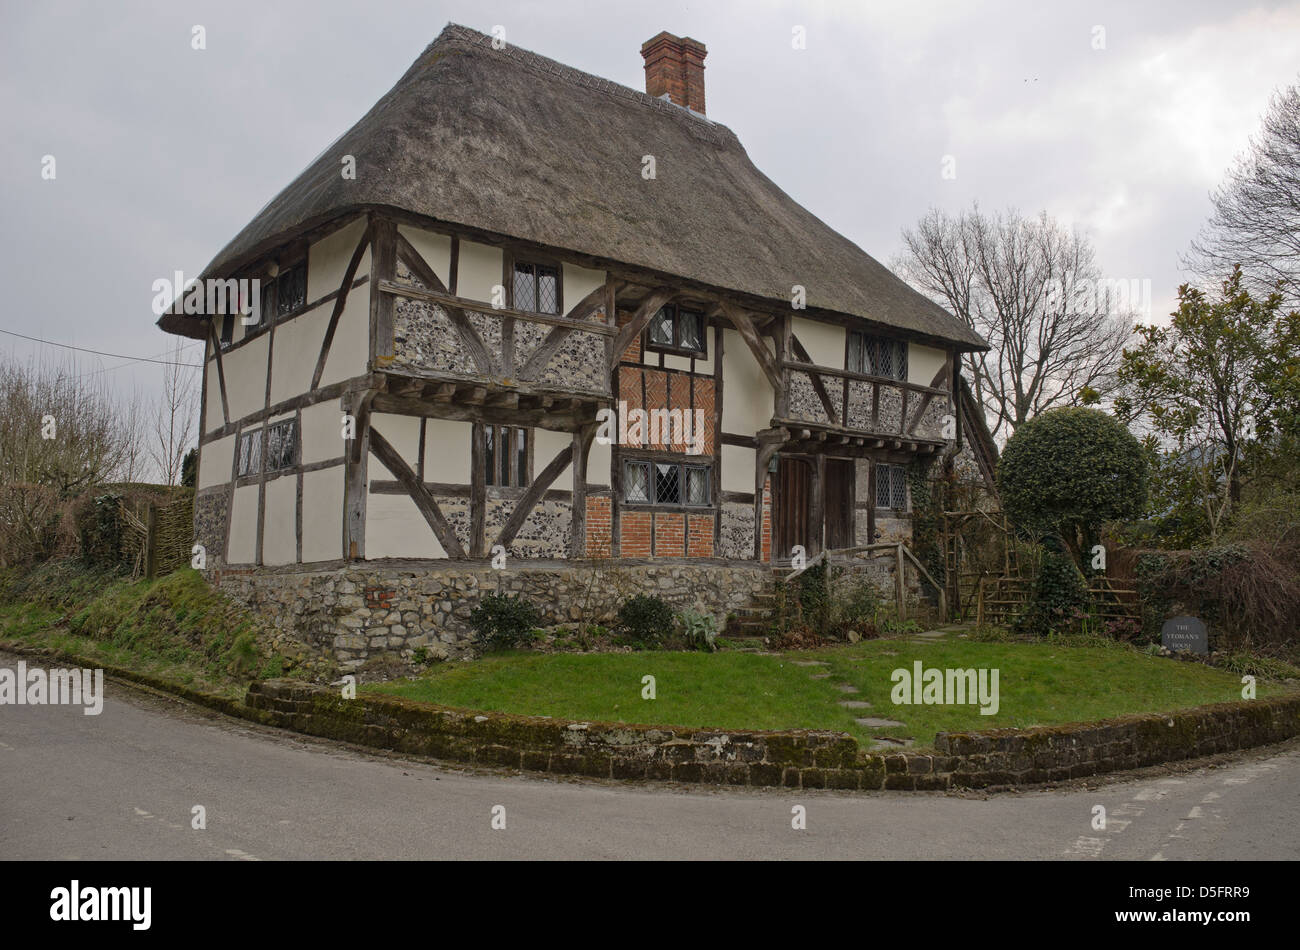 Dating from 1420, The Yeoman's House, is a medieval hall house,